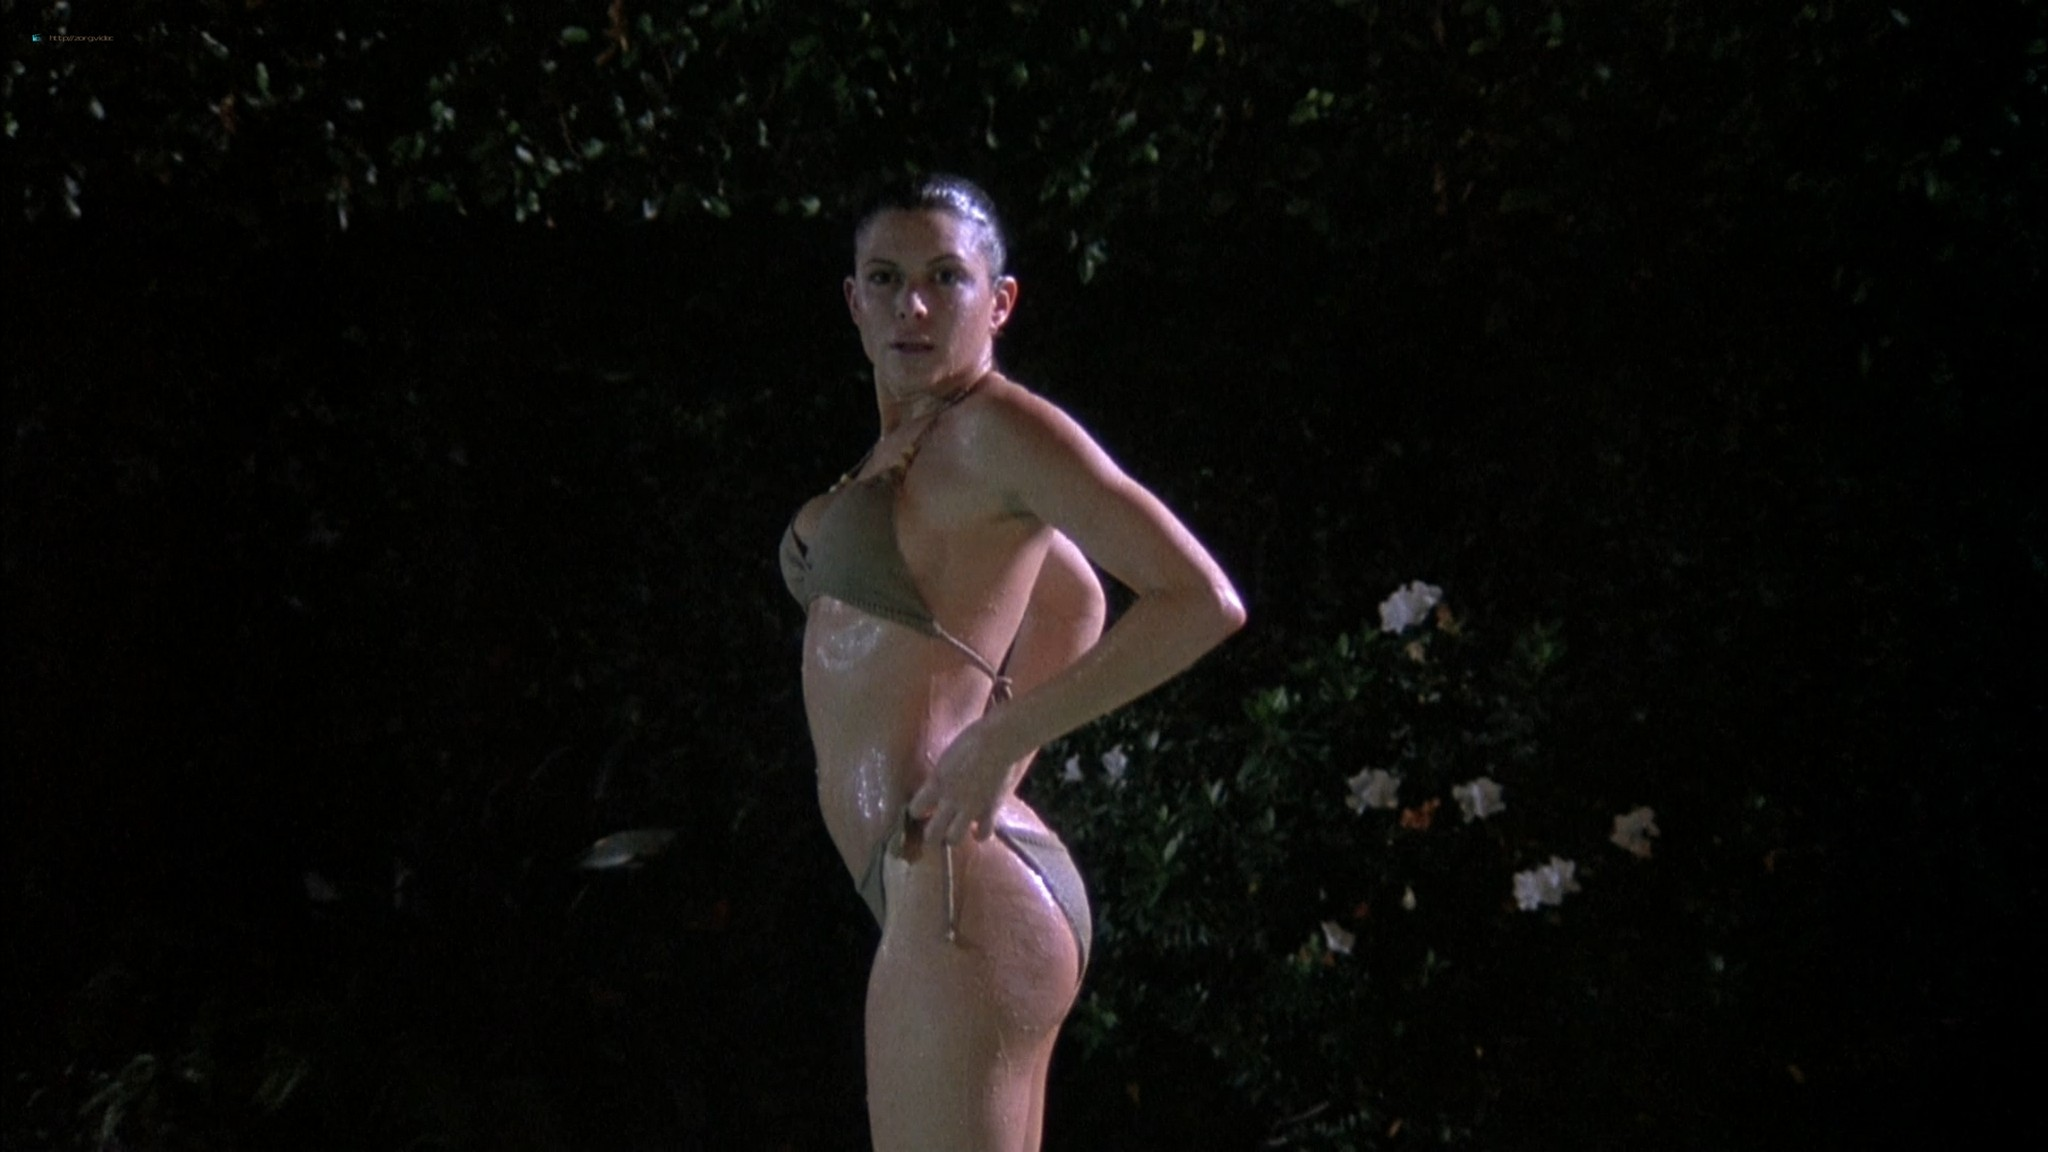 Kari Wuhrer wet and hot Amy Lindsay and others nude sex - Final Examination (2003) HD 1080p Web (8)